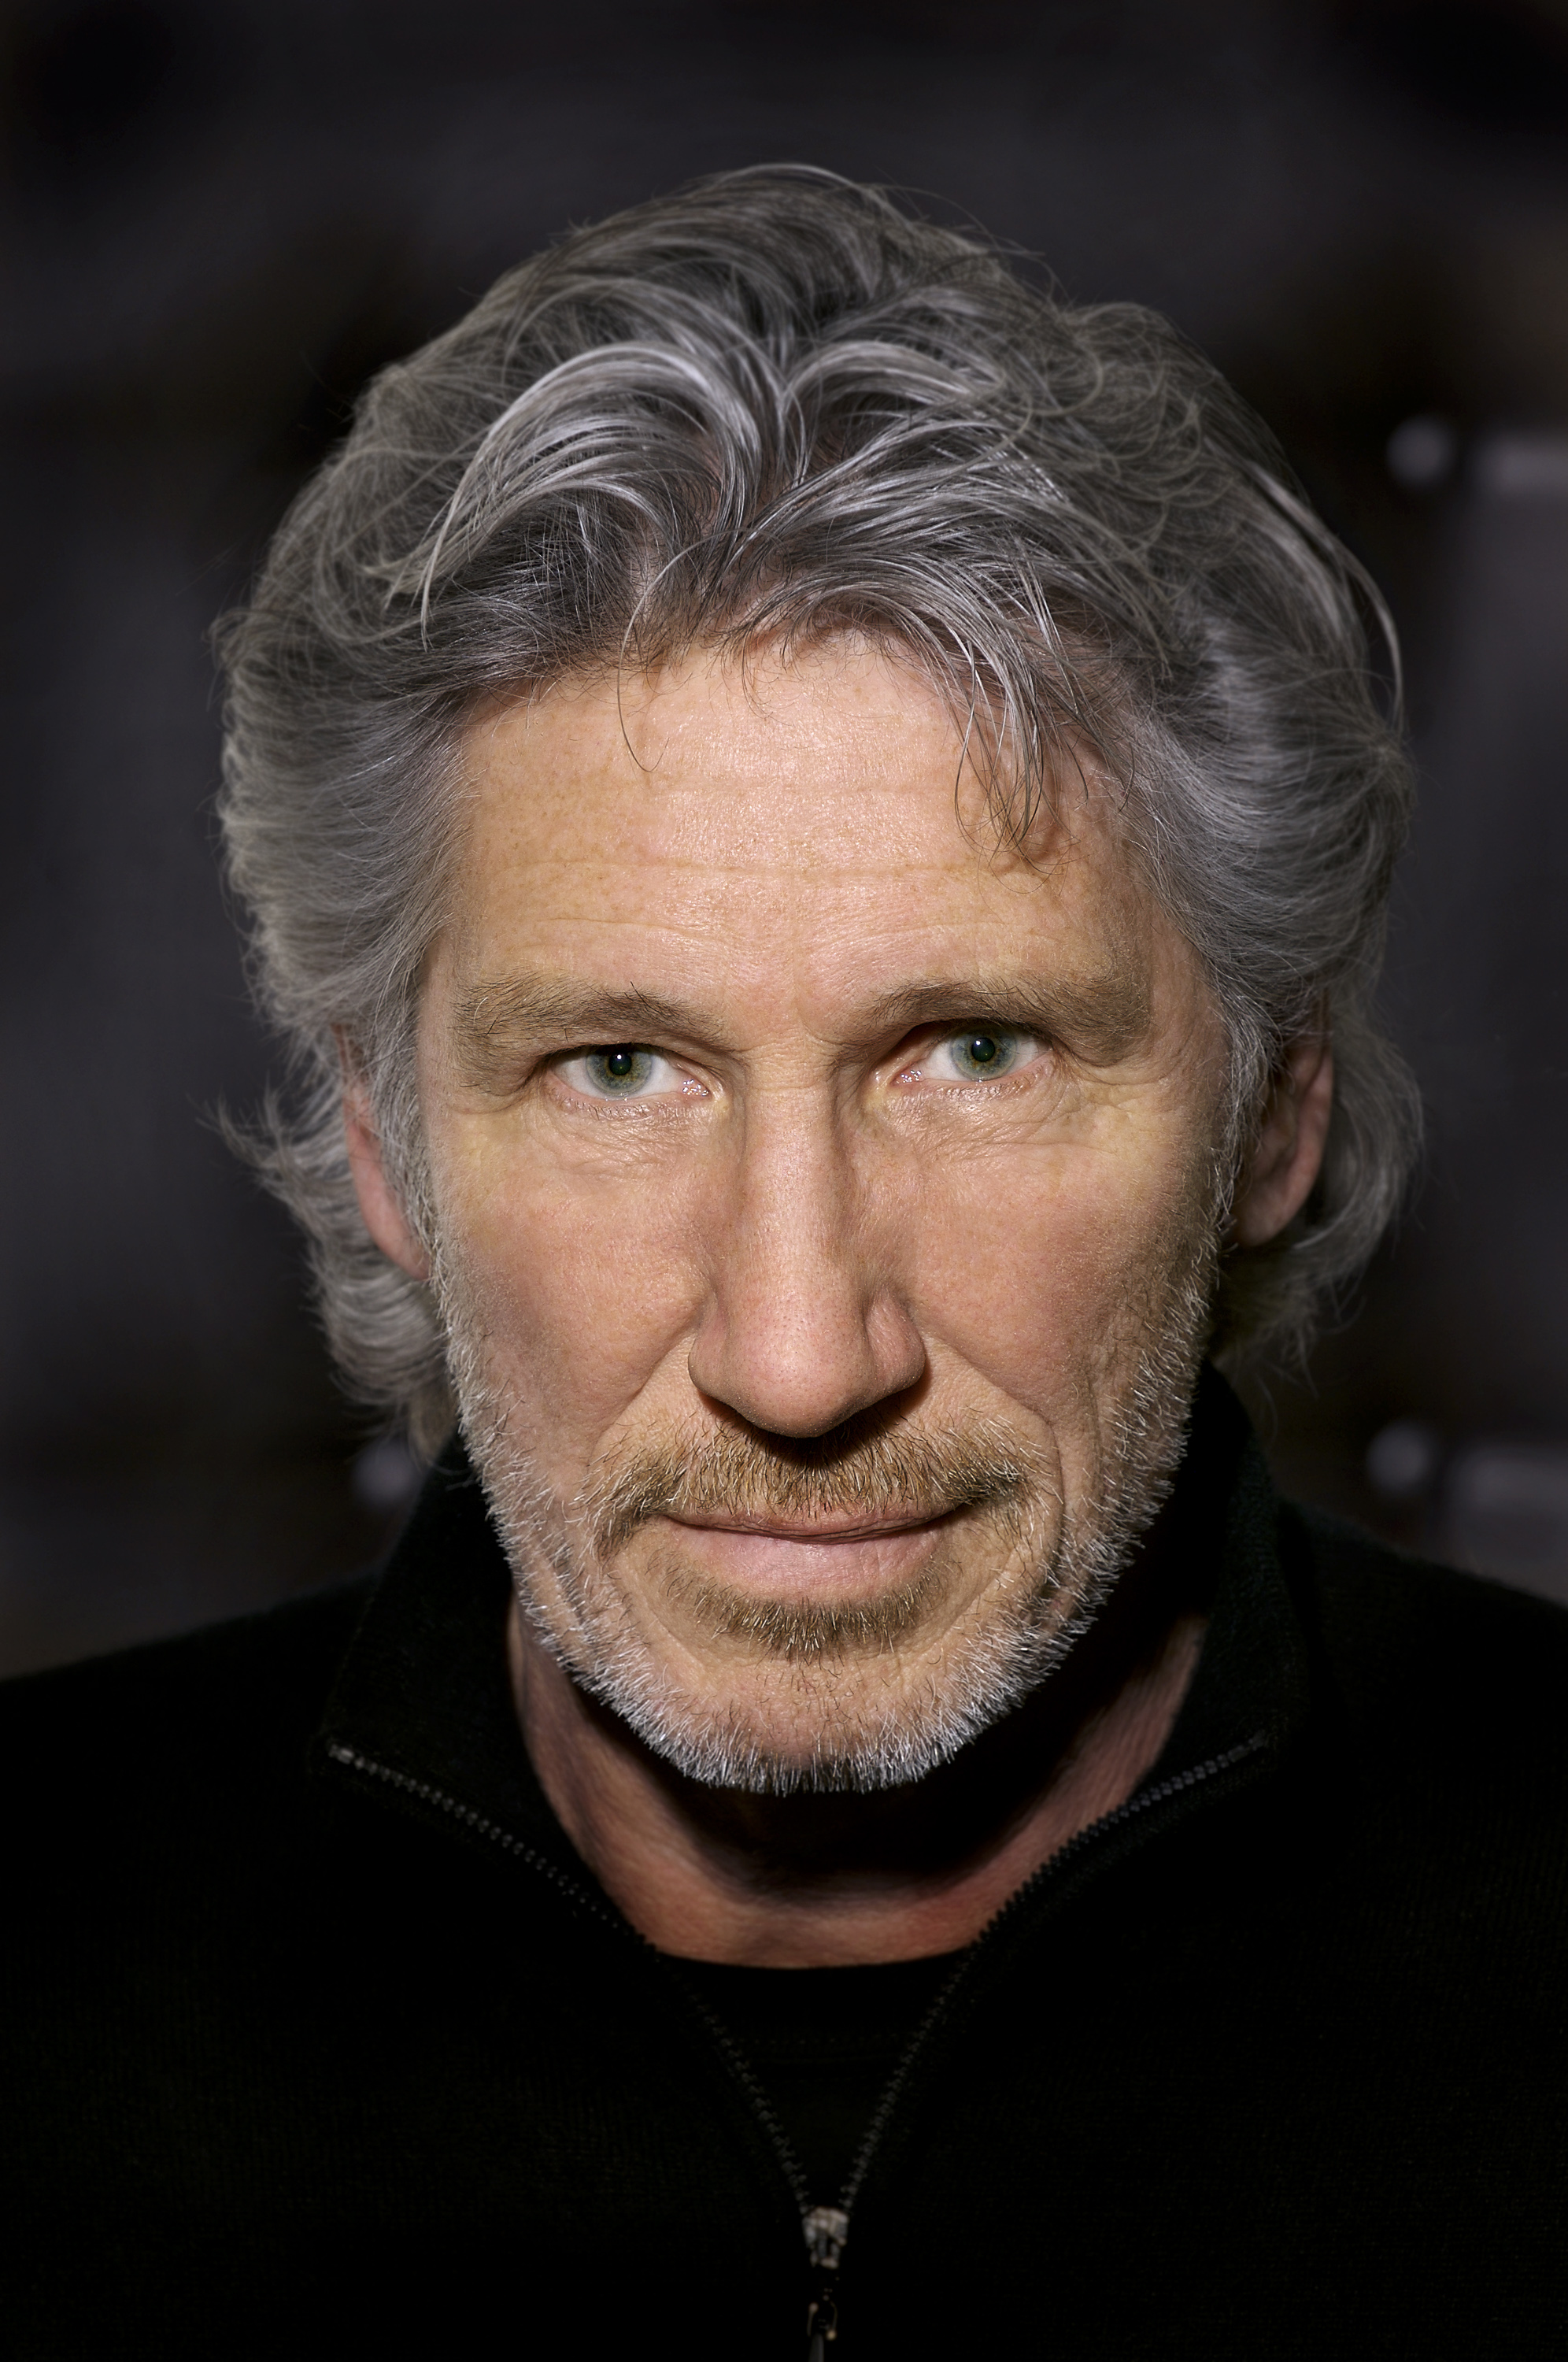 Pink Floyd co-founder Roger Waters